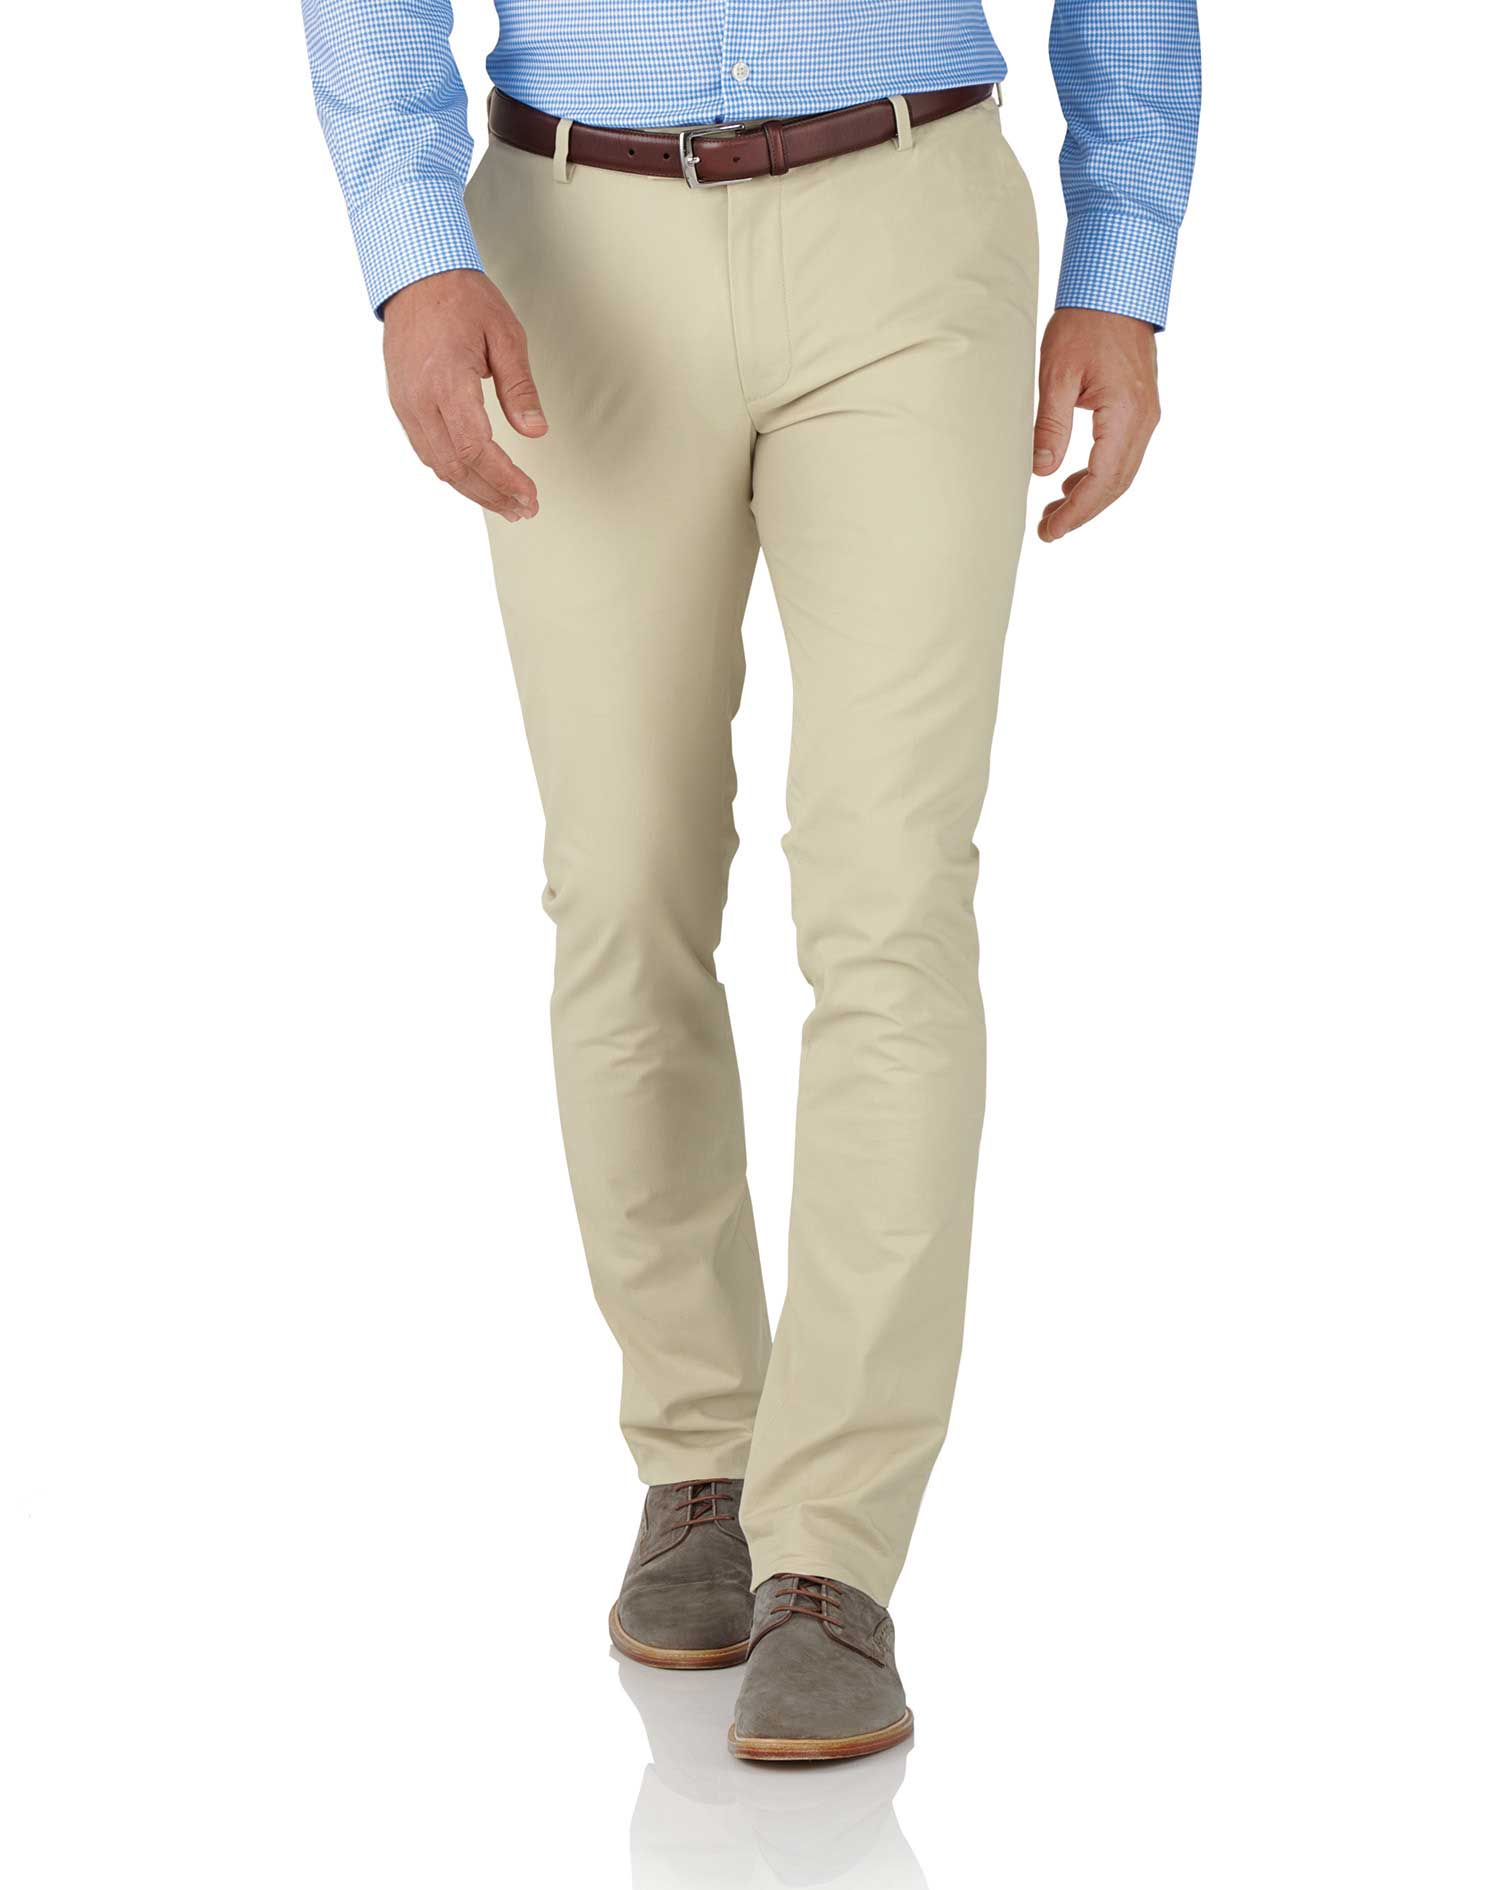 Stone Extra Slim Fit Stretch Cotton Chino Trousers Size W36 L32 by Charles Tyrwhitt